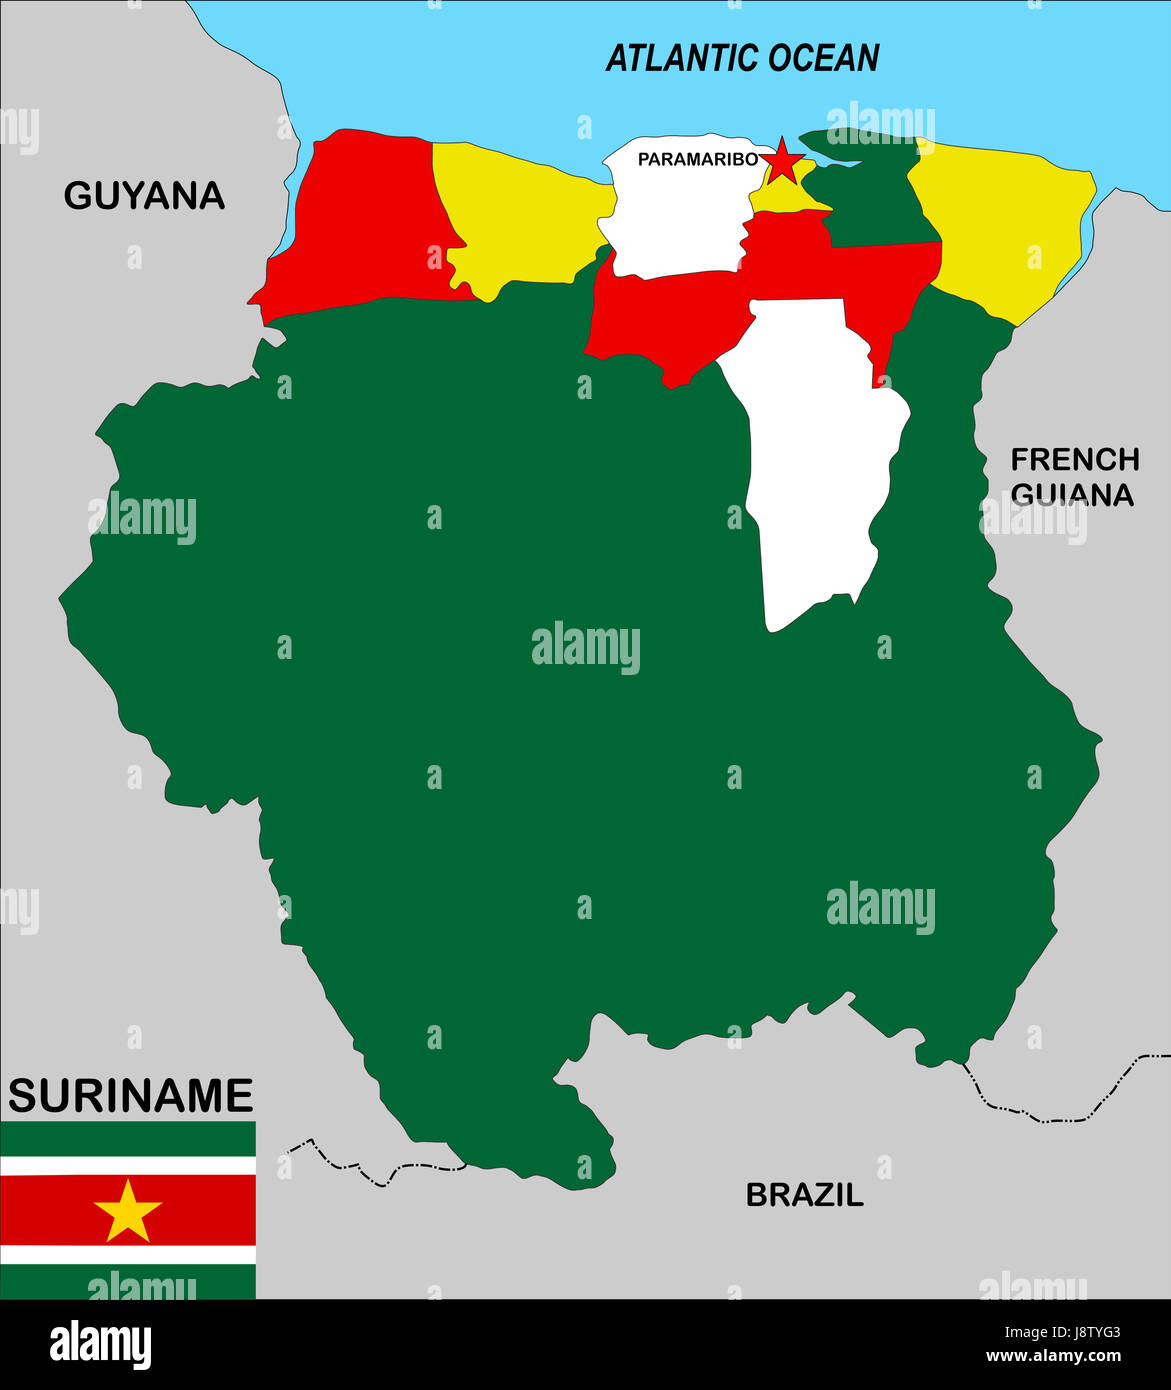 Suriname Map Atlas Map Of The World Political Flag Country